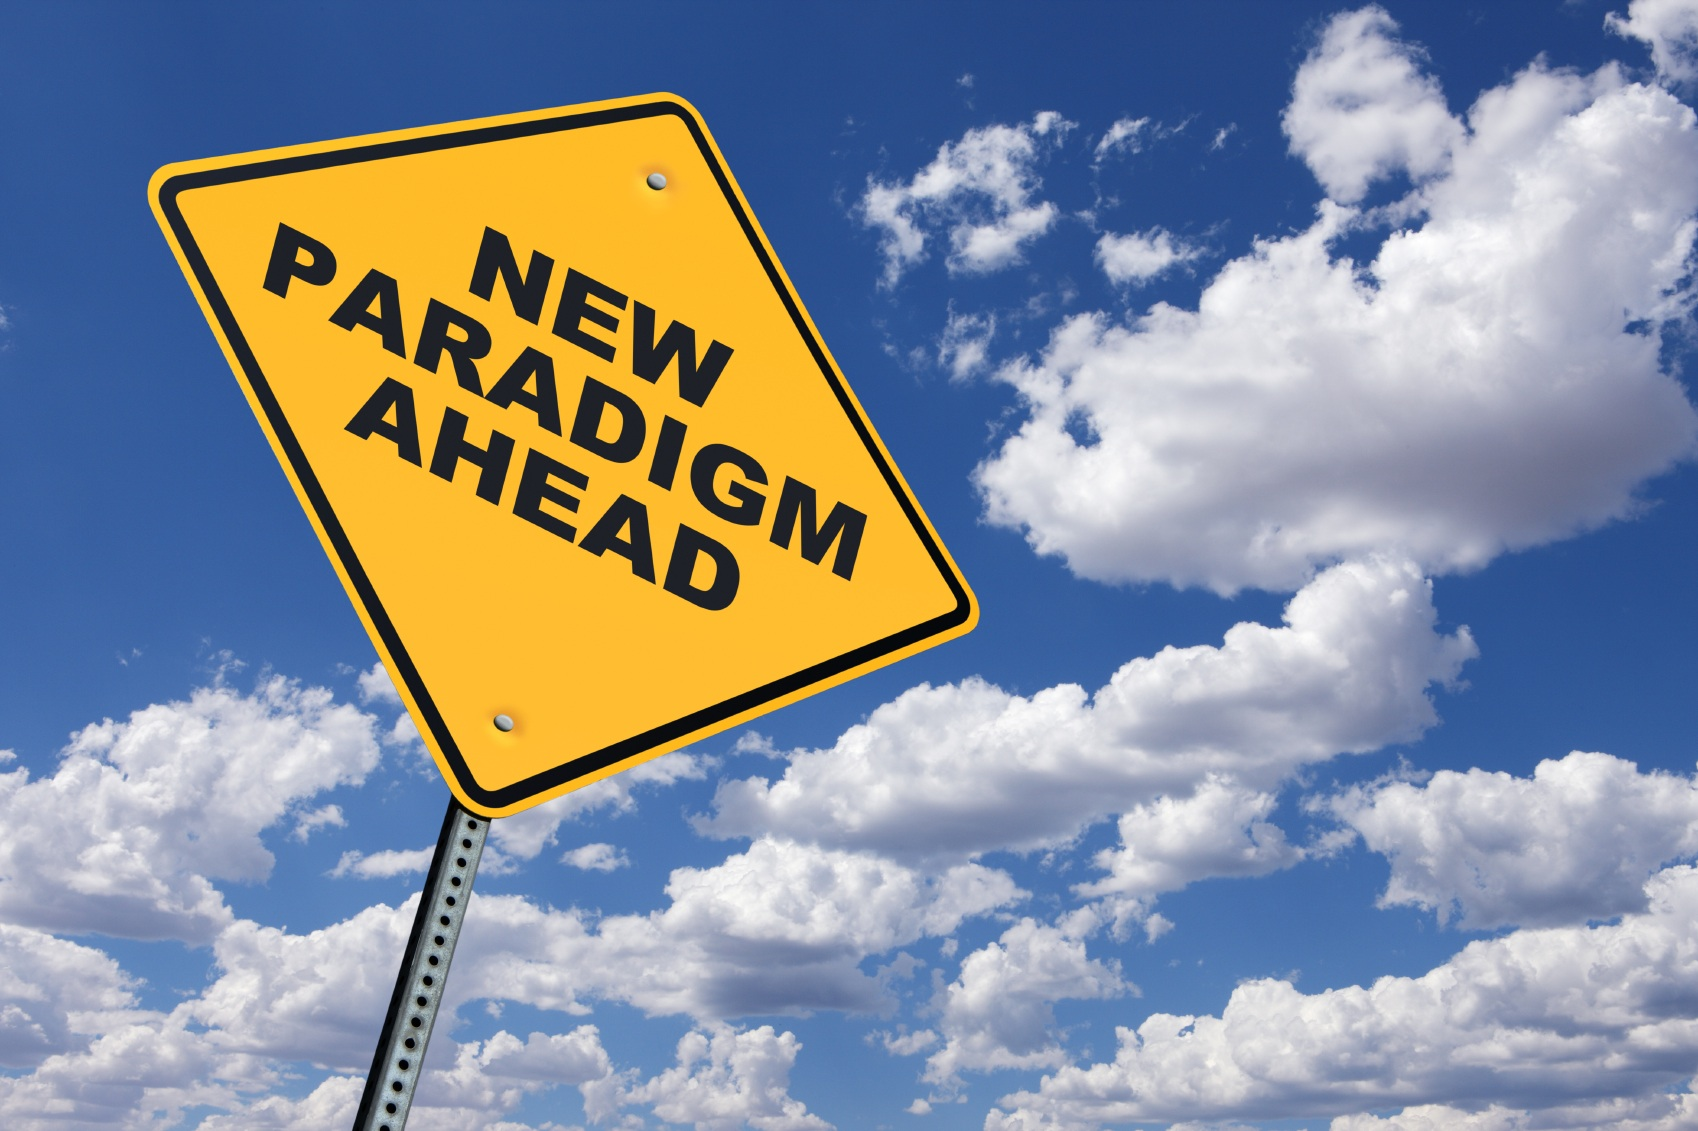 paradigm shift Definition of paradigm shift - a fundamental change in approach or underlying assumptions.